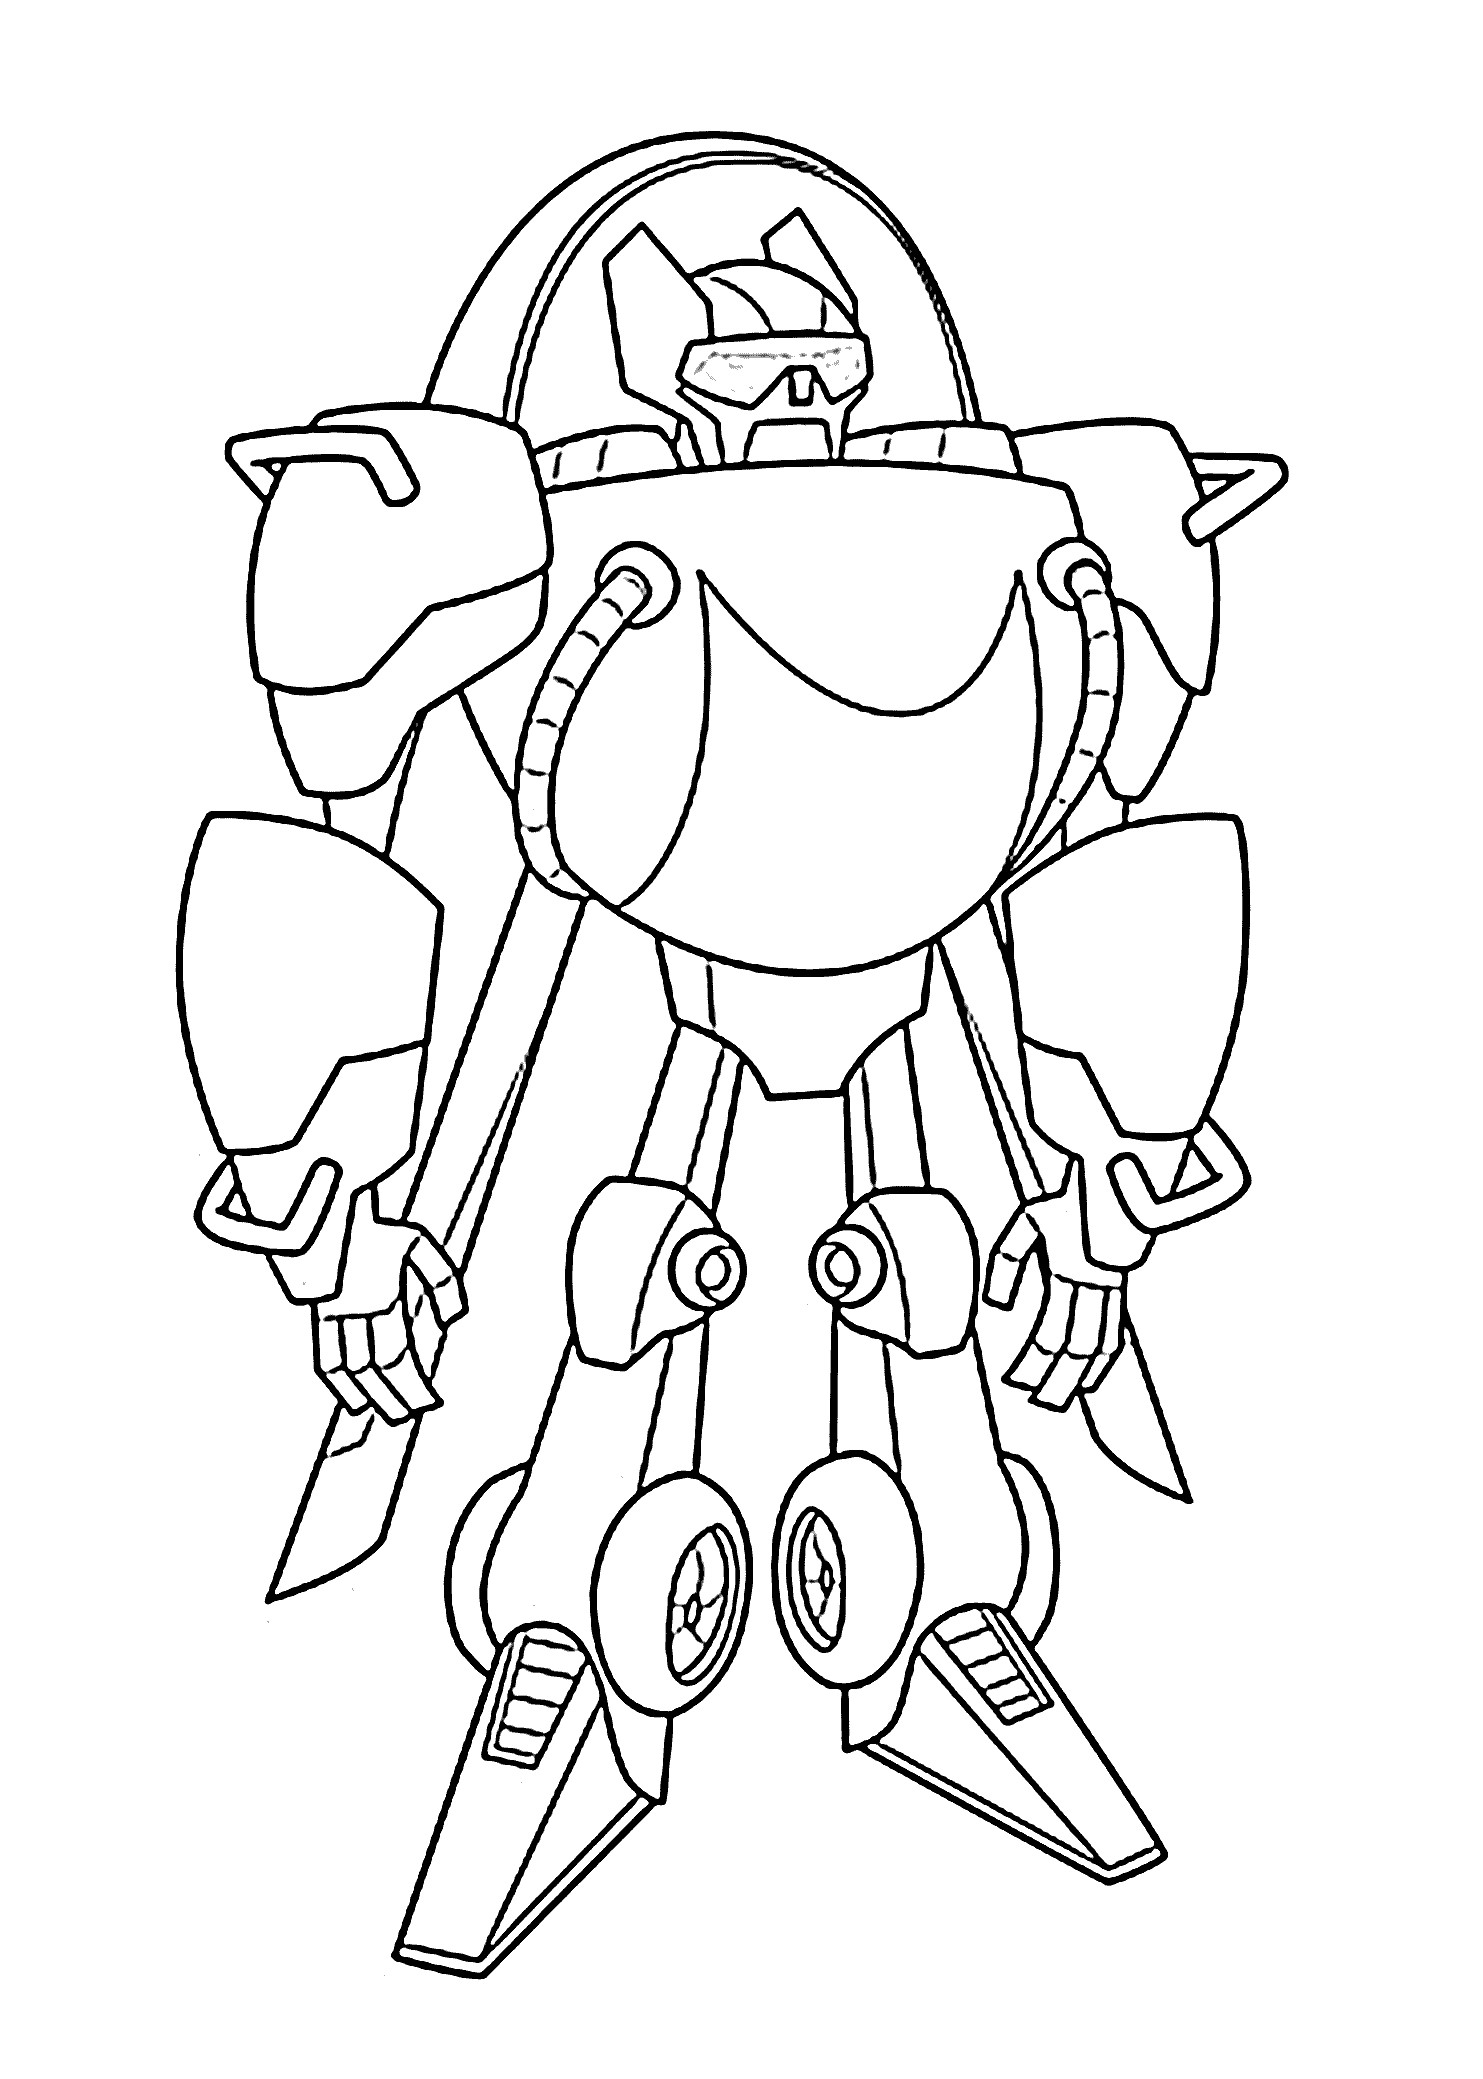 1483x2079 Rescue Bots Coloring Pages To Print Copy Blades Rescue Bot